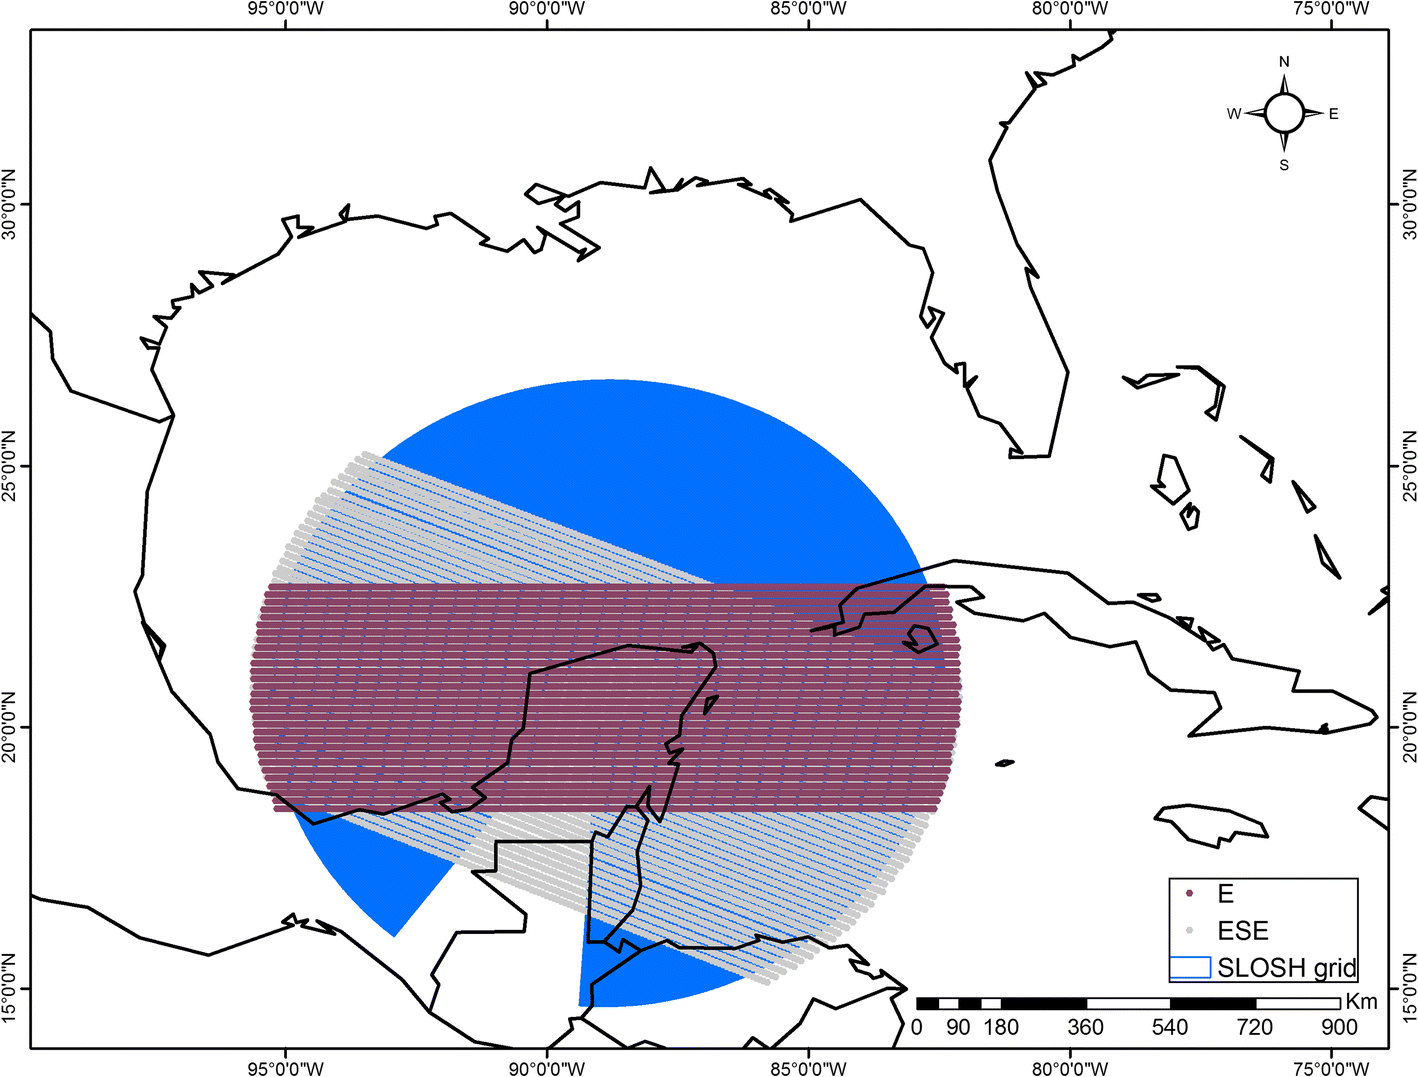 Hurricane flood risk assessment for the Yucatan and Campeche State